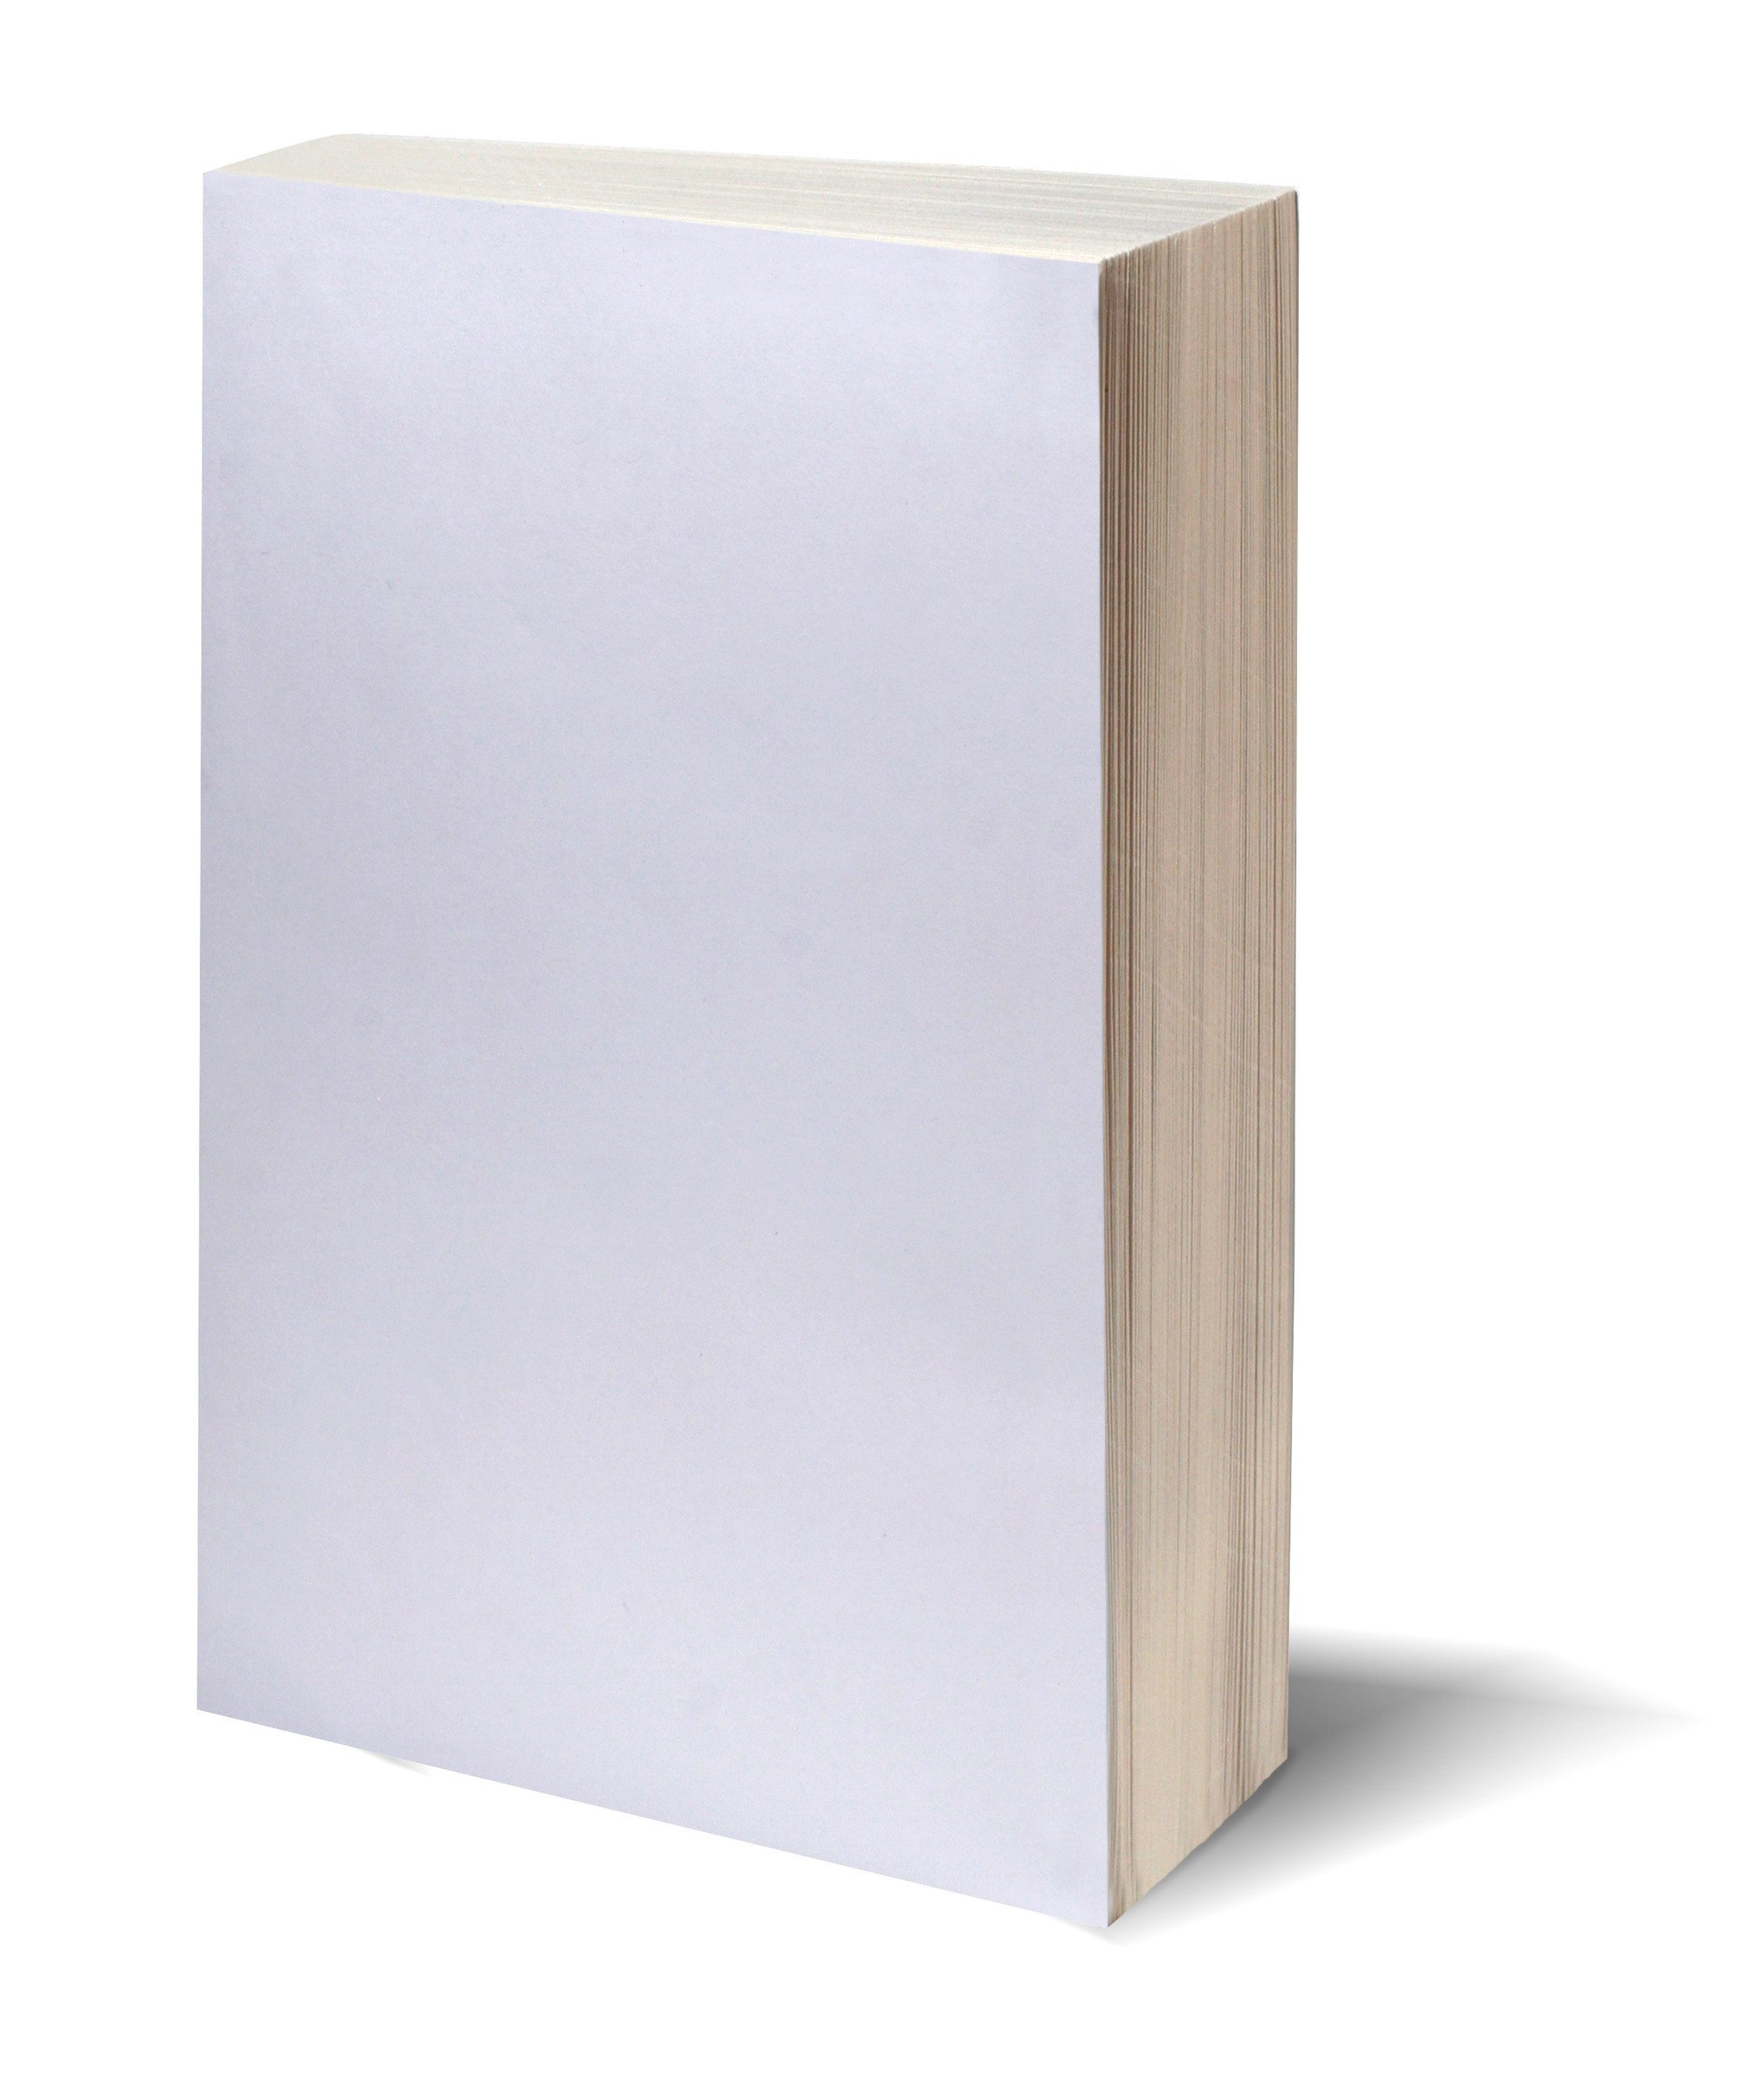 3d Book Cover Template How to Make A Free 3d Cover Image Of Your Book My Ebook